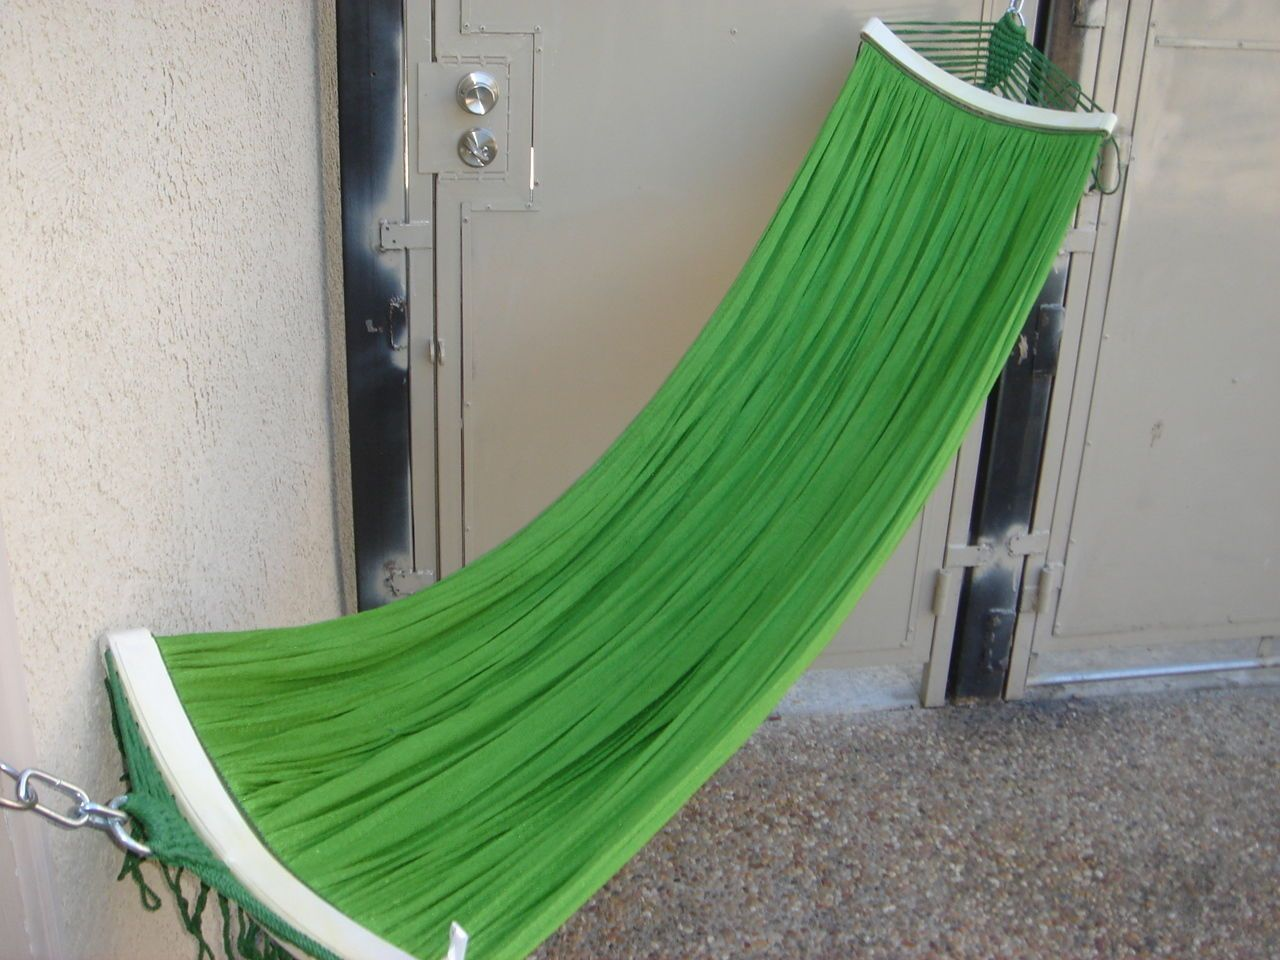 Indooroutdoor adult hammock swing bed large for adult up to